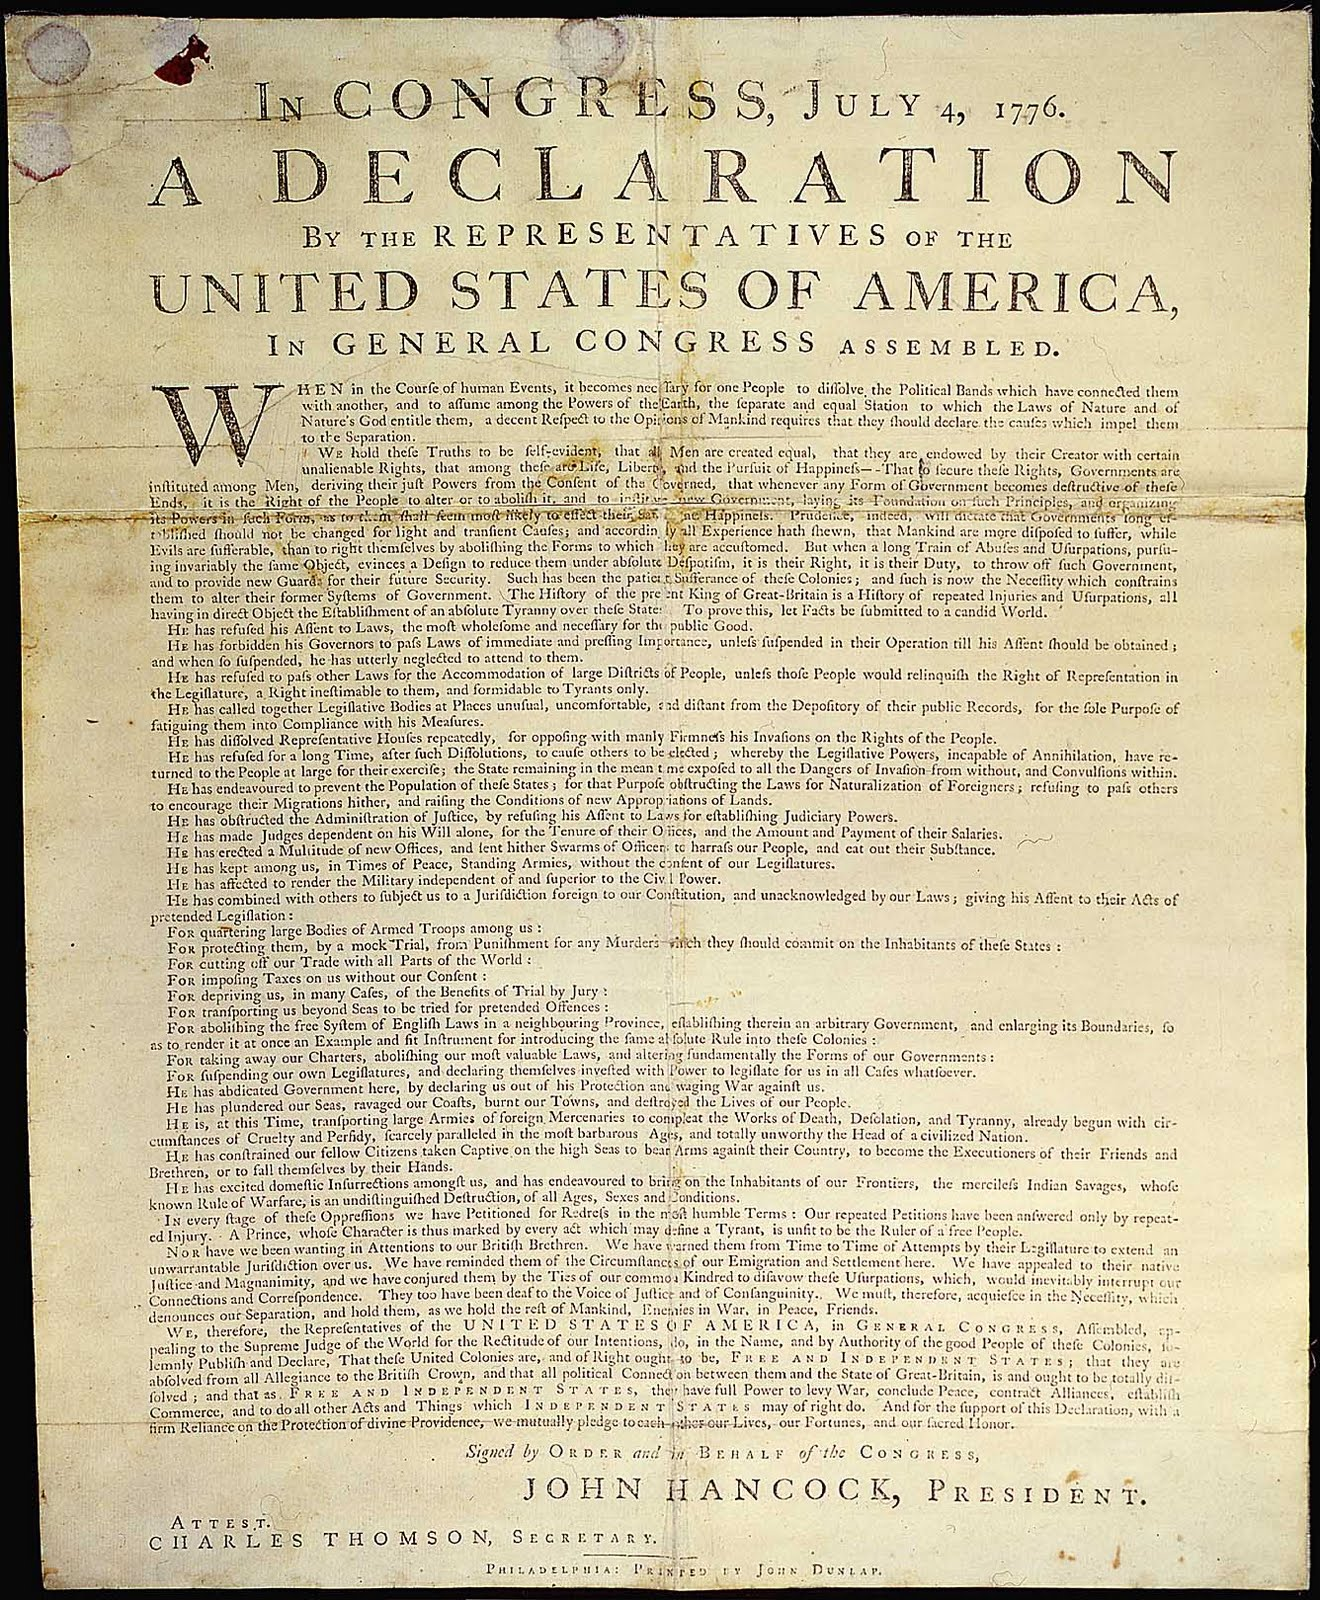 the process of creating the declaration of independence of 1776 Start studying ch 3 gov learn vocabulary, terms, and more with flashcards, games who was given the task of writing the first draft of the declaration of independence january 10, 1776.